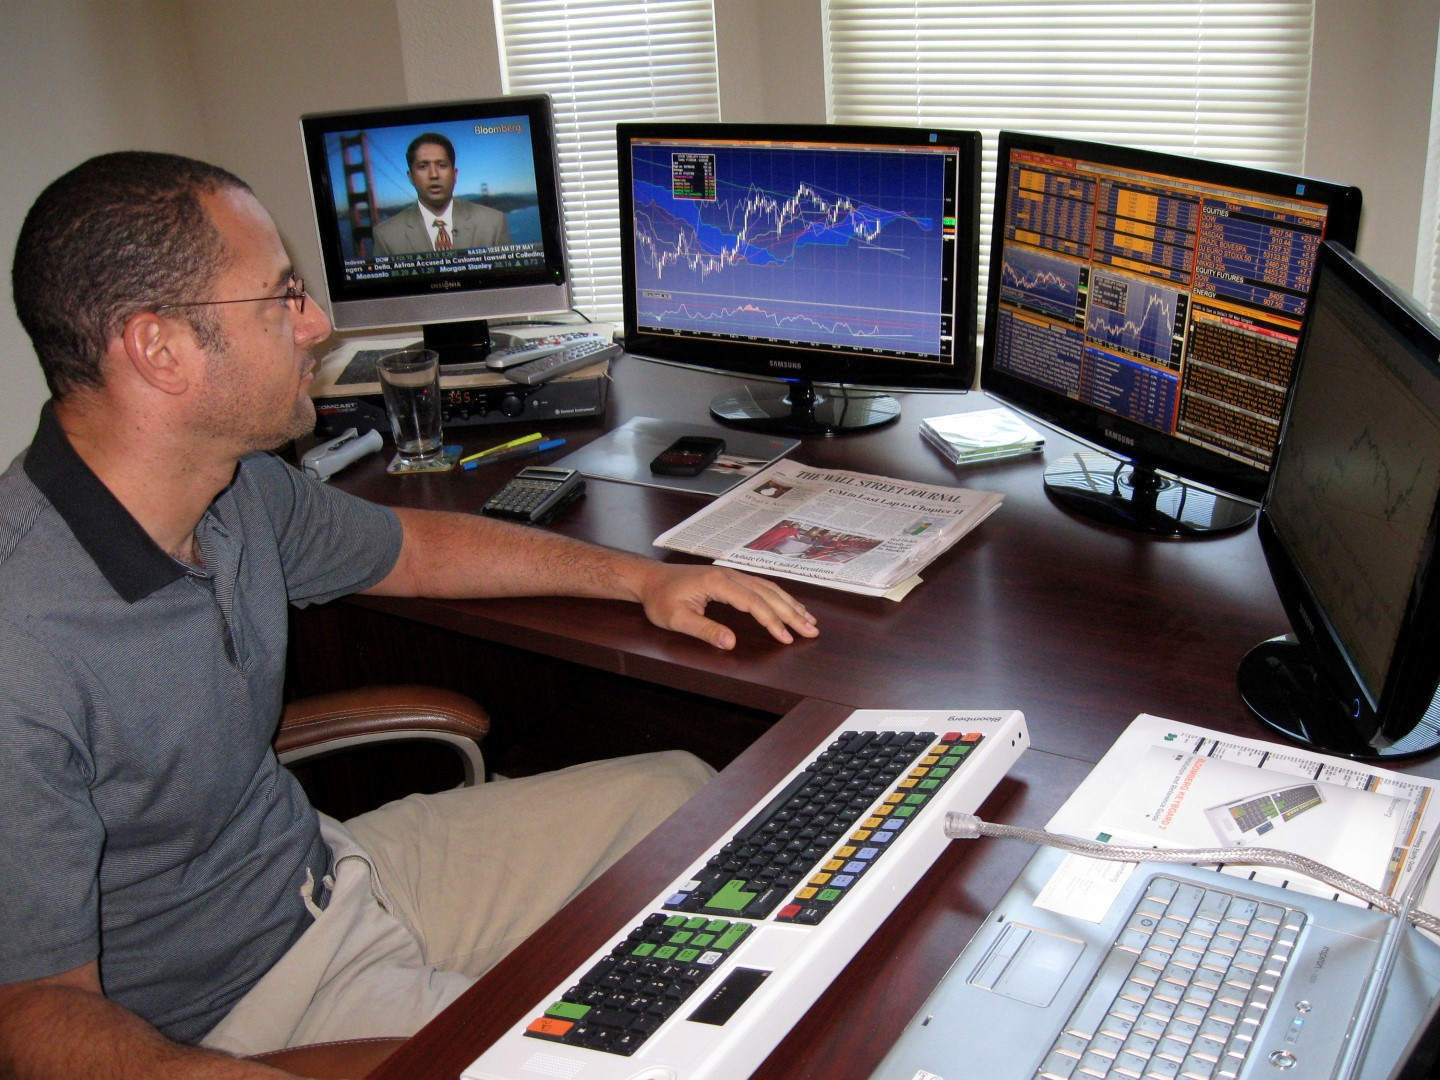 Online trader Raymond Firetag works from his home in Sacramento, California in this undated handout photo. After 14 years in real estate, the 43-year old now makes bets on the world's biggest currency pairs, such as the euro/dollar, dollar/Swiss francs, and sterling/yen, on a laptop hooked up to four monitors in his house. To match feature MARKET/CURRENCIES REUTERS/Handout (UNITED STATES BUSINESS) FOR EDITORIAL USE ONLY. NOT FOR SALE FOR MARKETING OR ADVERTISING CAMPAIGNS - RTR247KB